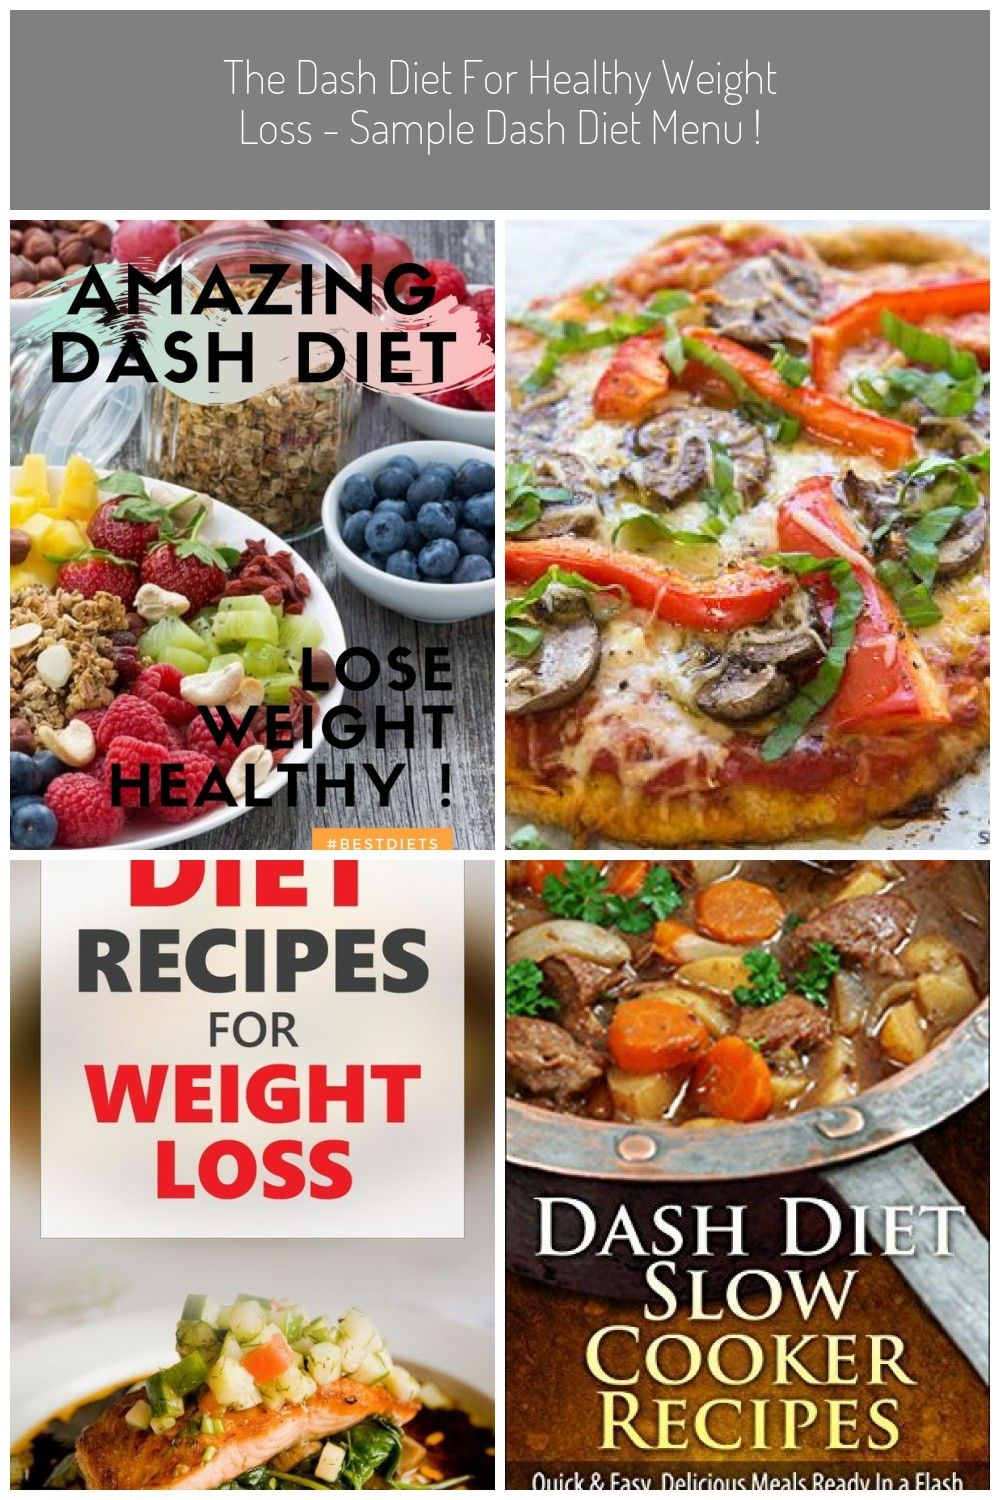 The Amazing Dash Diet Plan You can lose 10 pounds in a week with The Dash Diet  One of the most famous diet plan  diat The Dash Diet Plan Lose 10 Pounds in a Week